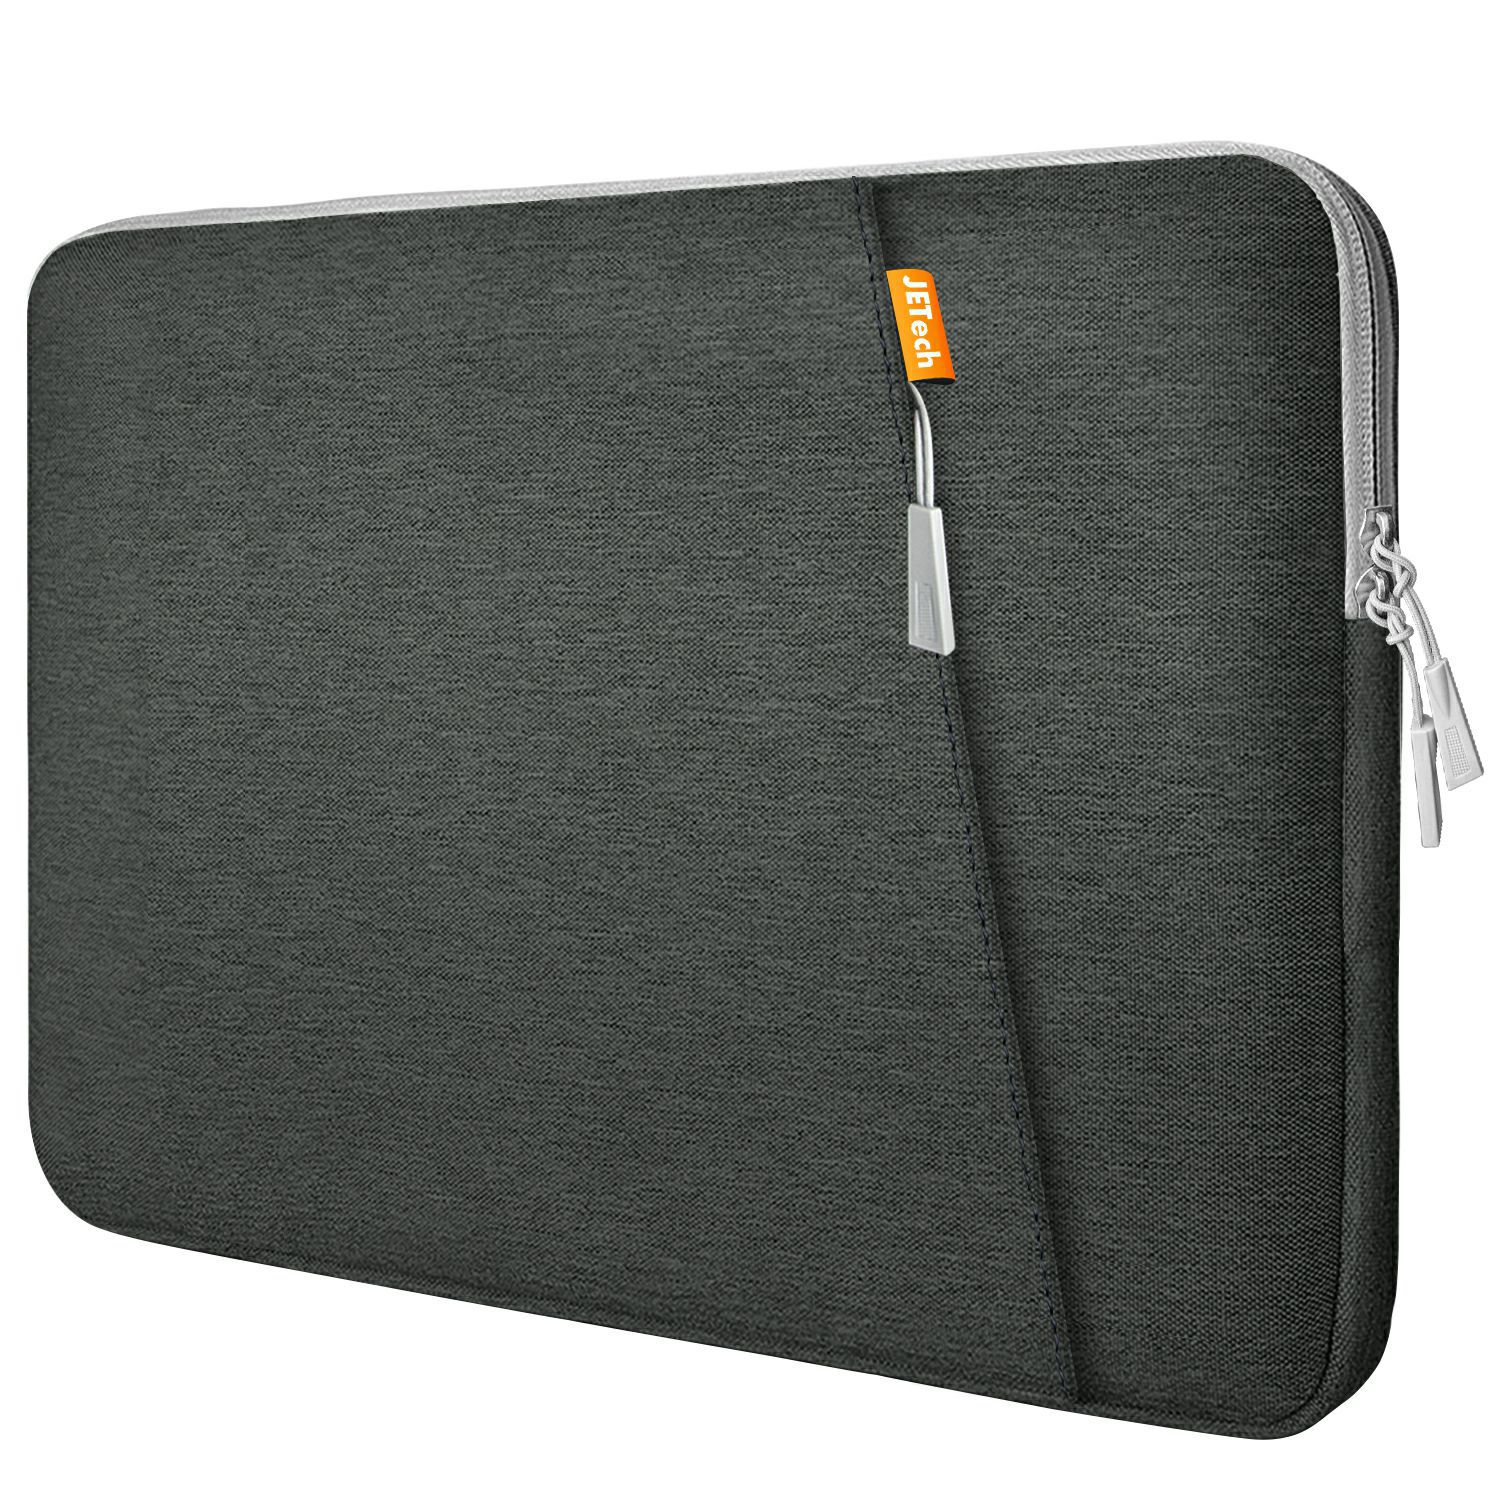 JETech 12-Inch Laptop Sleeve Waterproof Shock Resistant Protective Notebook Tablet iPad Tab Bag Case with Accessory Pockets